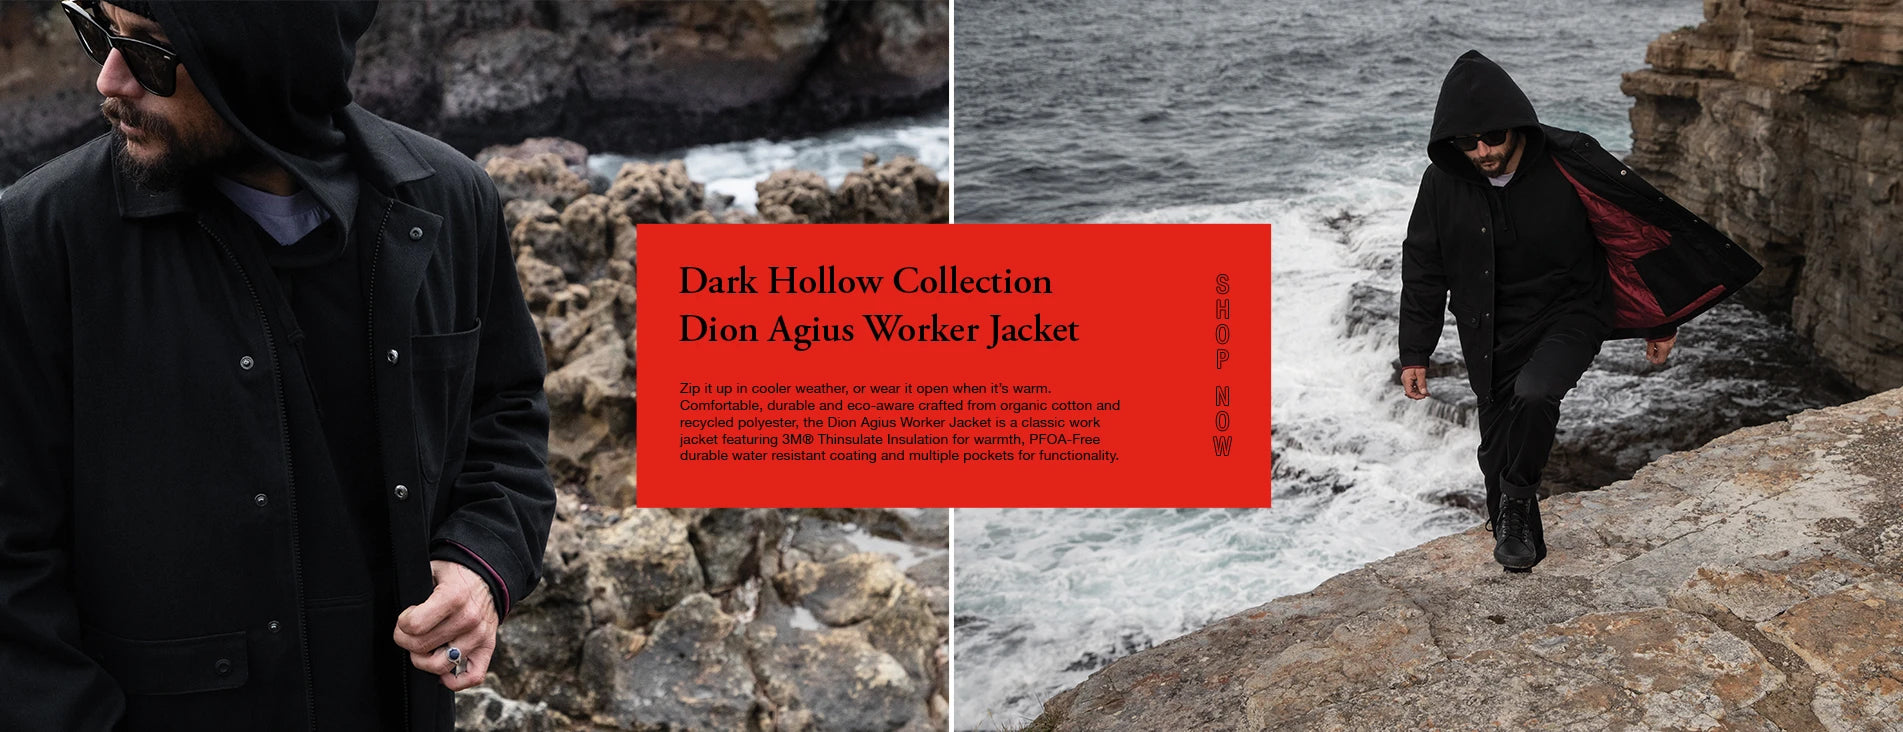 Globe Introducing The Dark Hollow Collection Dion Agius Worker Jacket